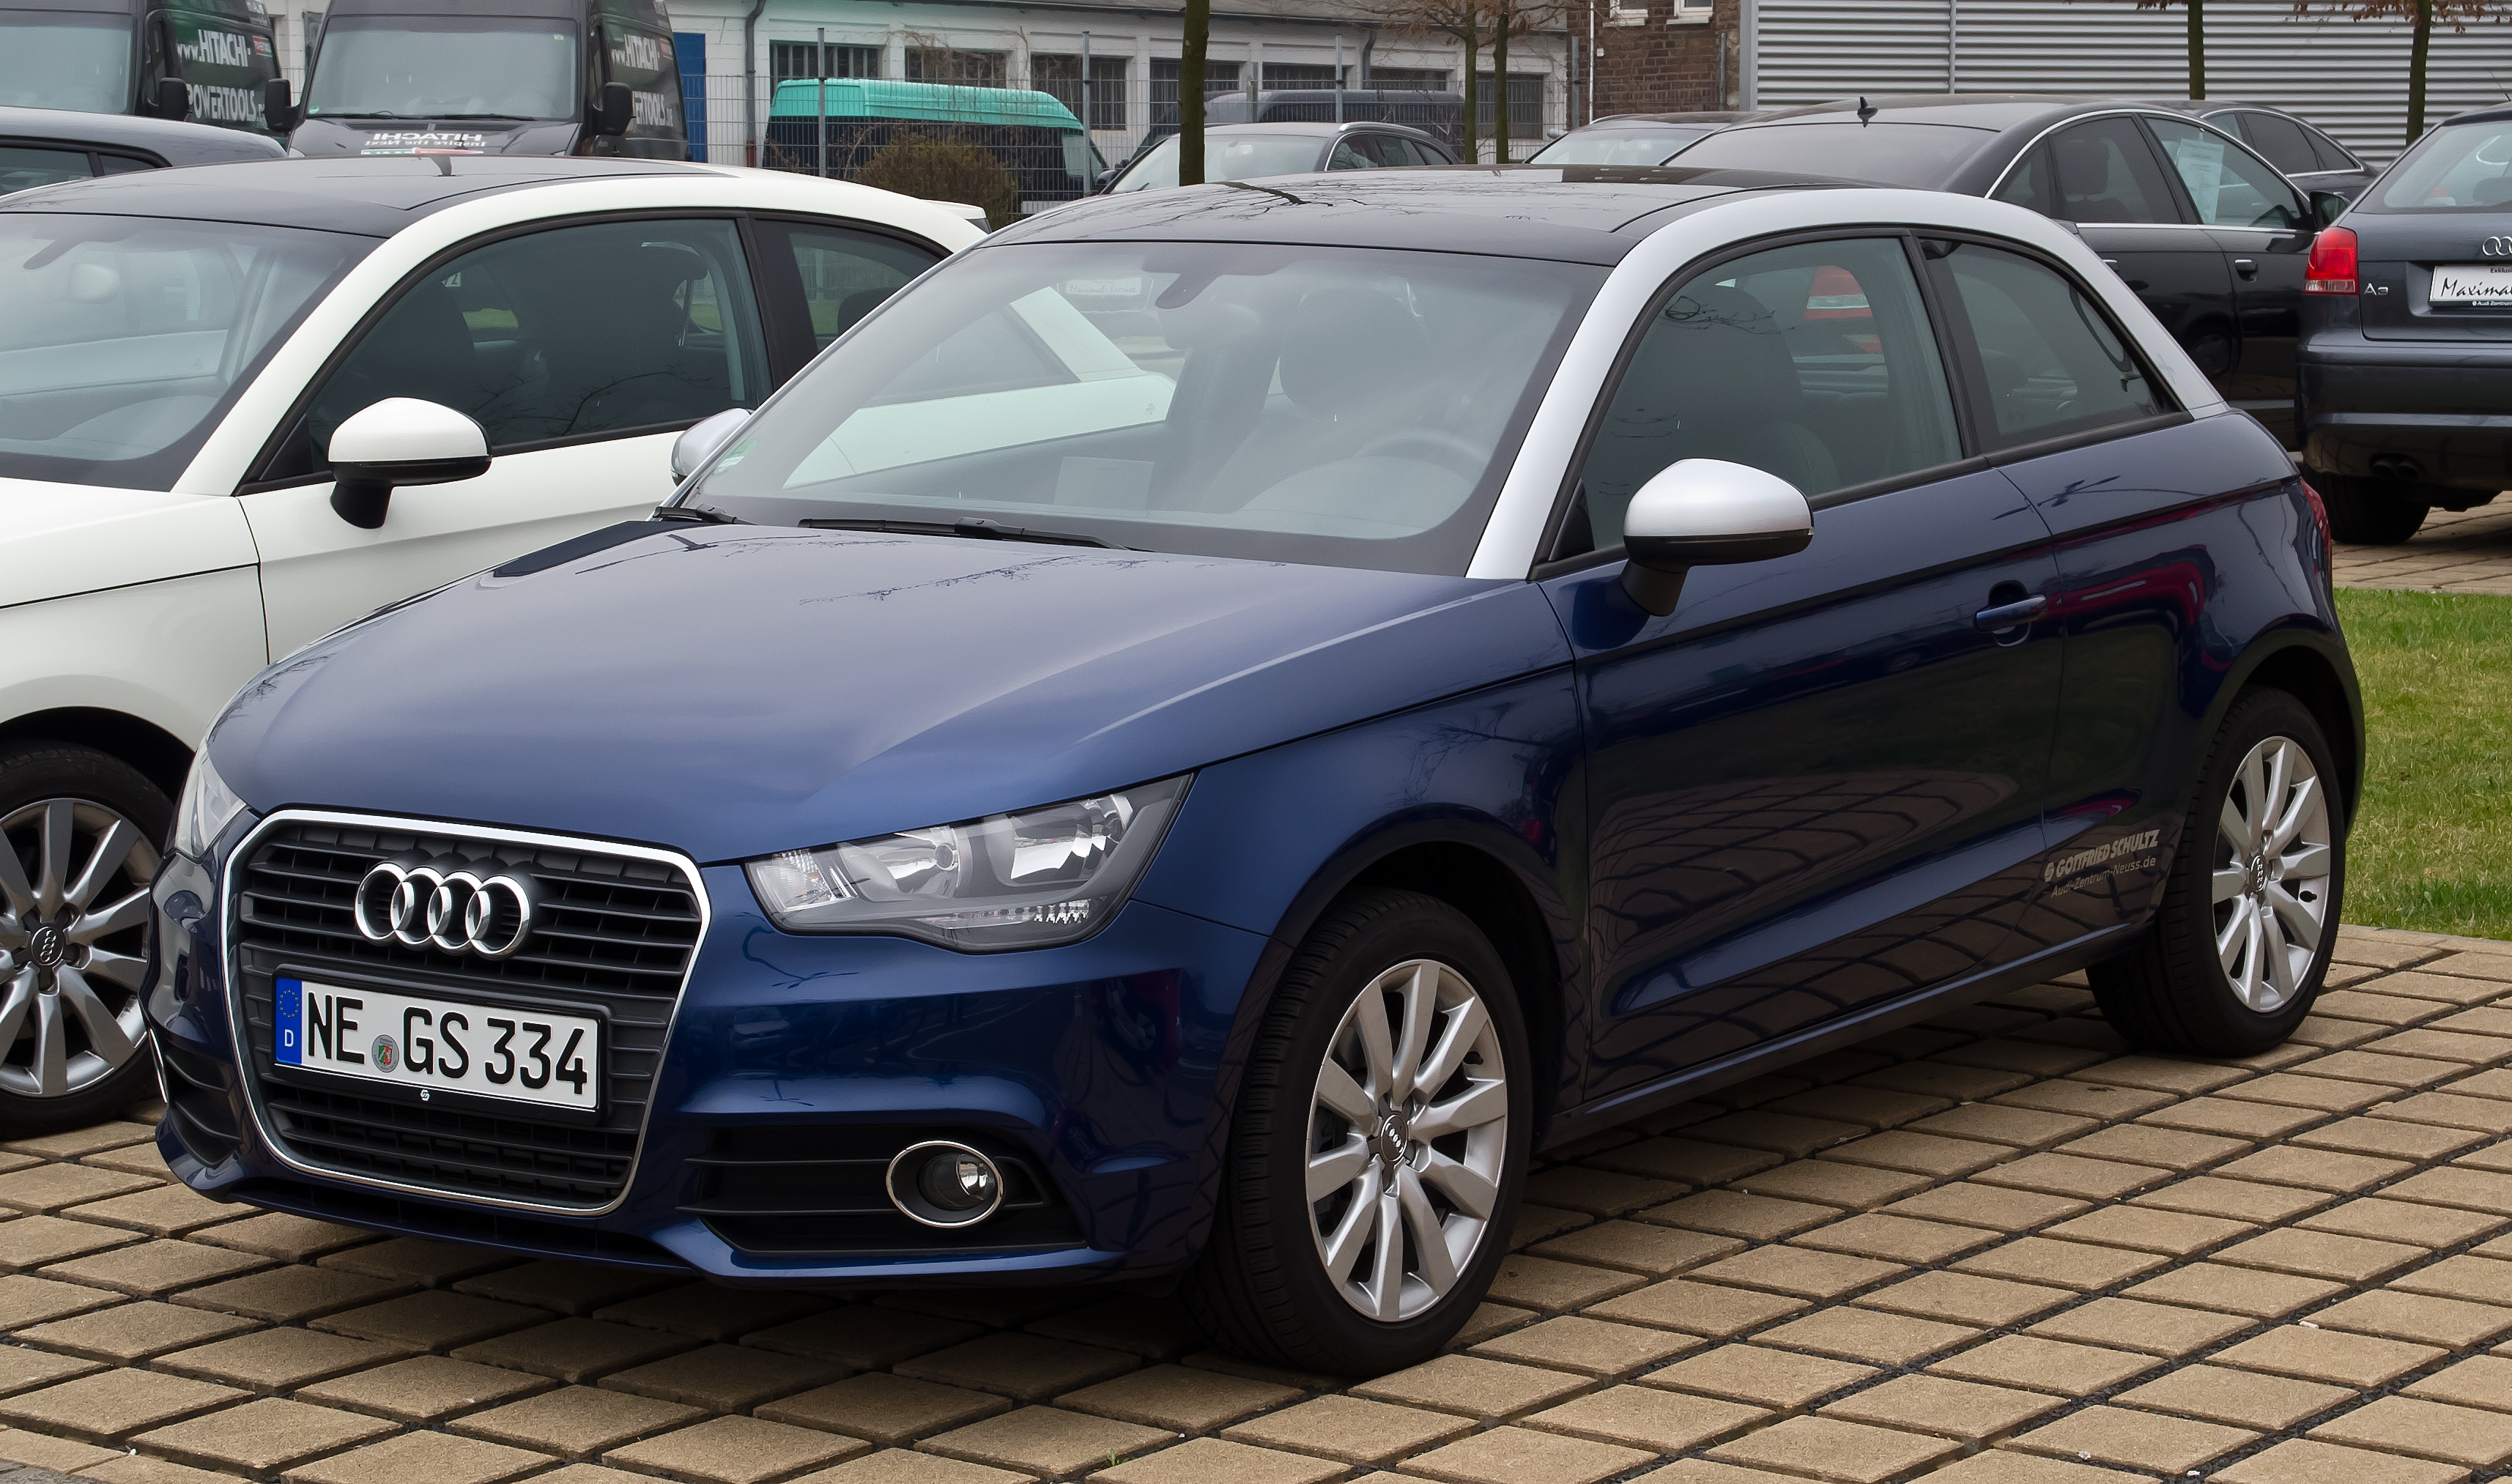 file audi a1 1 6 tdi ambition frontansicht 17 m rz 2012 d wikipedia. Black Bedroom Furniture Sets. Home Design Ideas